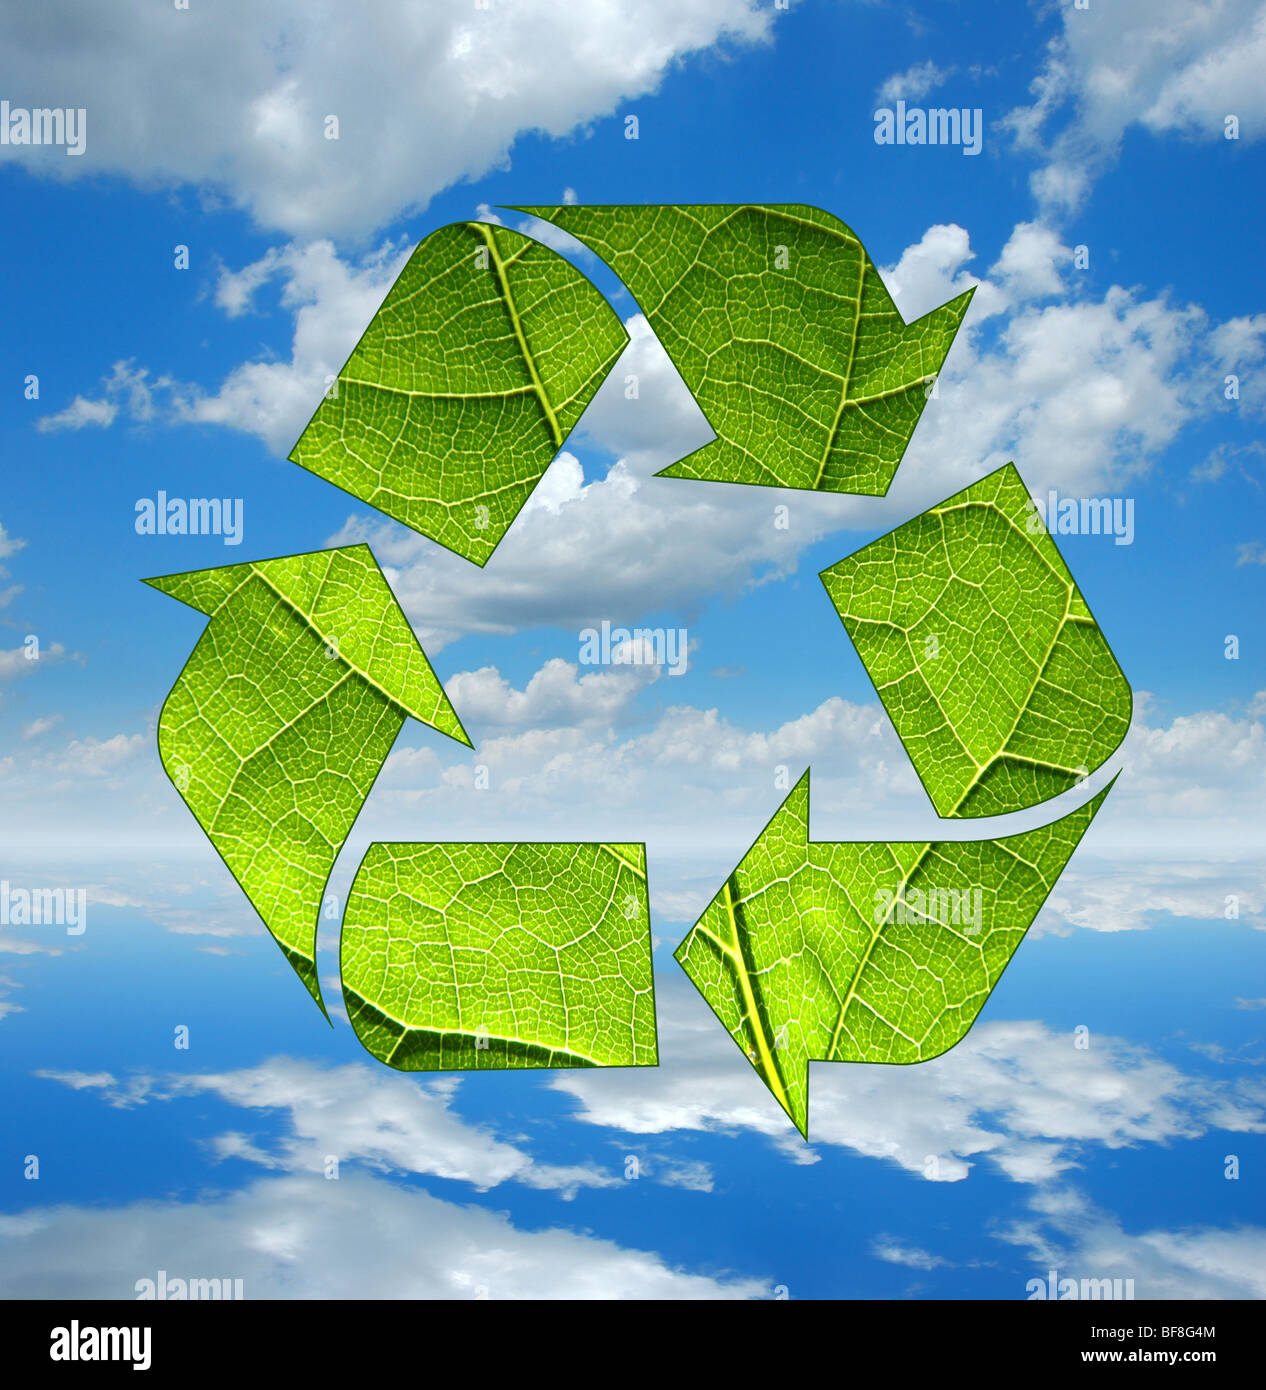 Recycle logo and Clouds and blue sky reflecting on calm waters - Stock Image